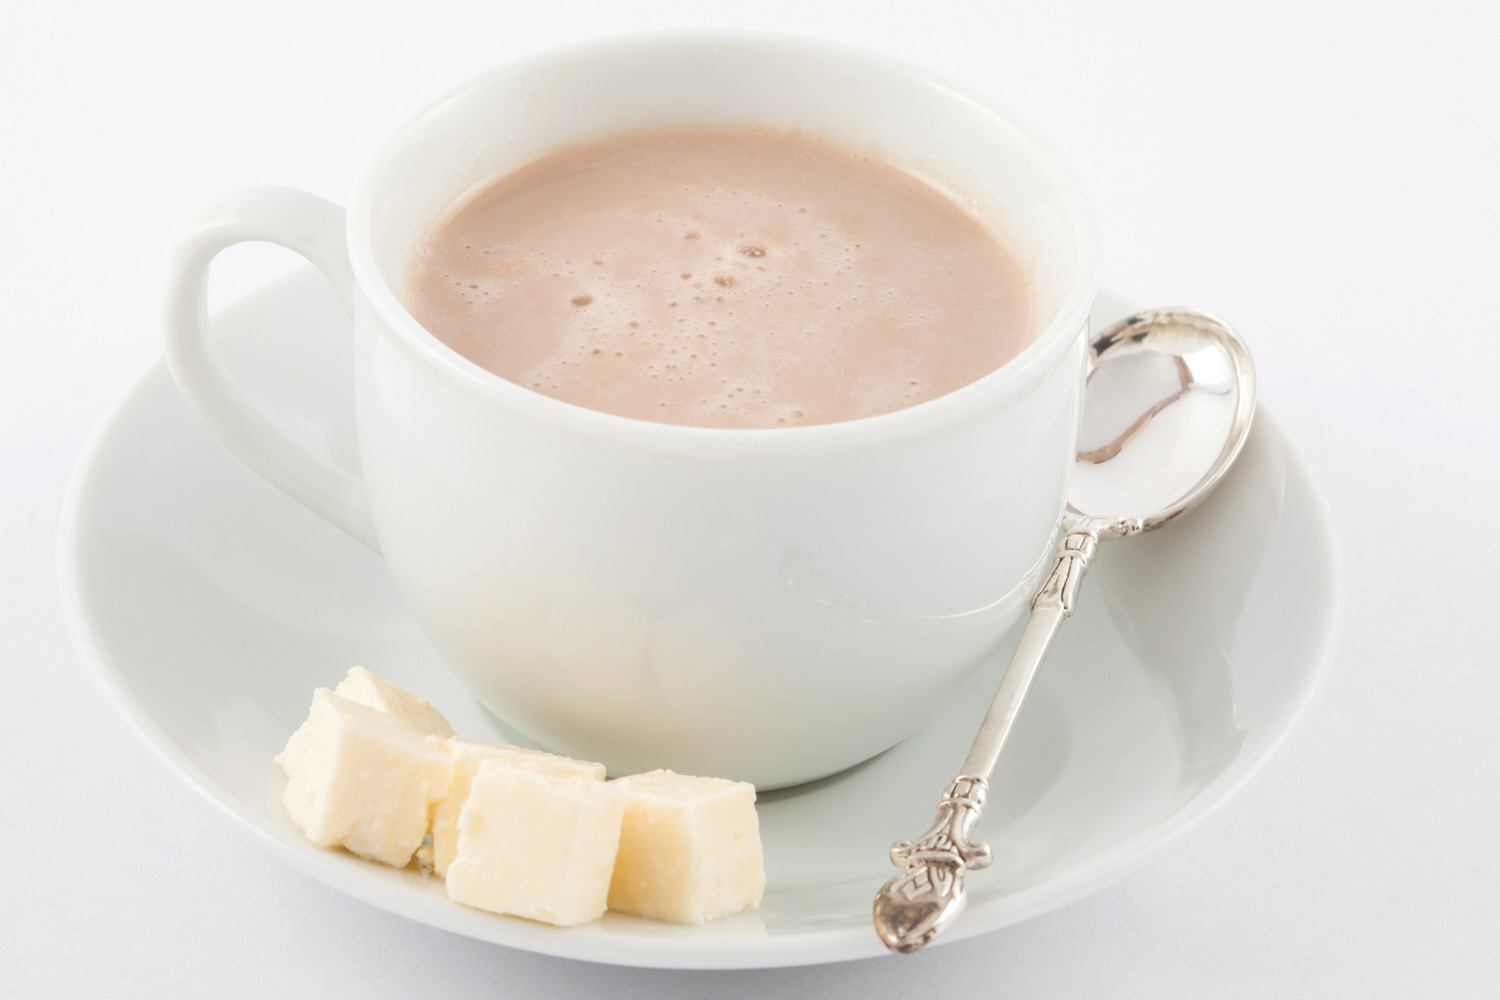 Cup of hot chocolate with cheese served in white dishware